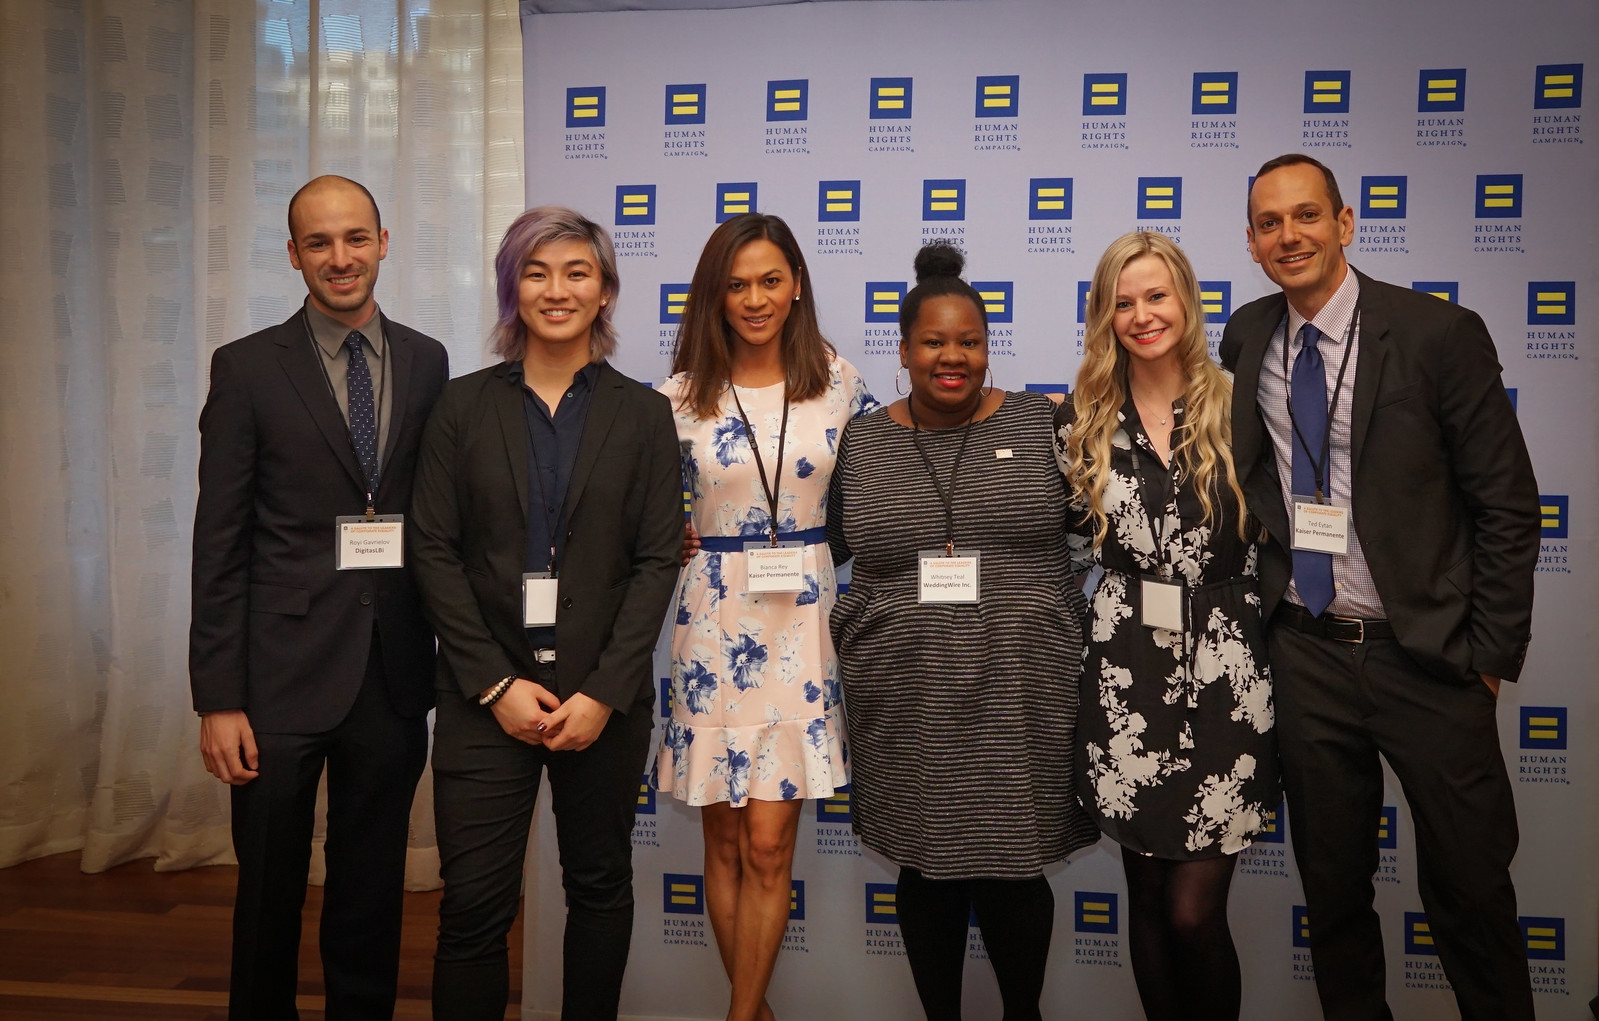 Photo Friday: It's important for a health system to score 100% on the HRC Corporate Equality Index, too